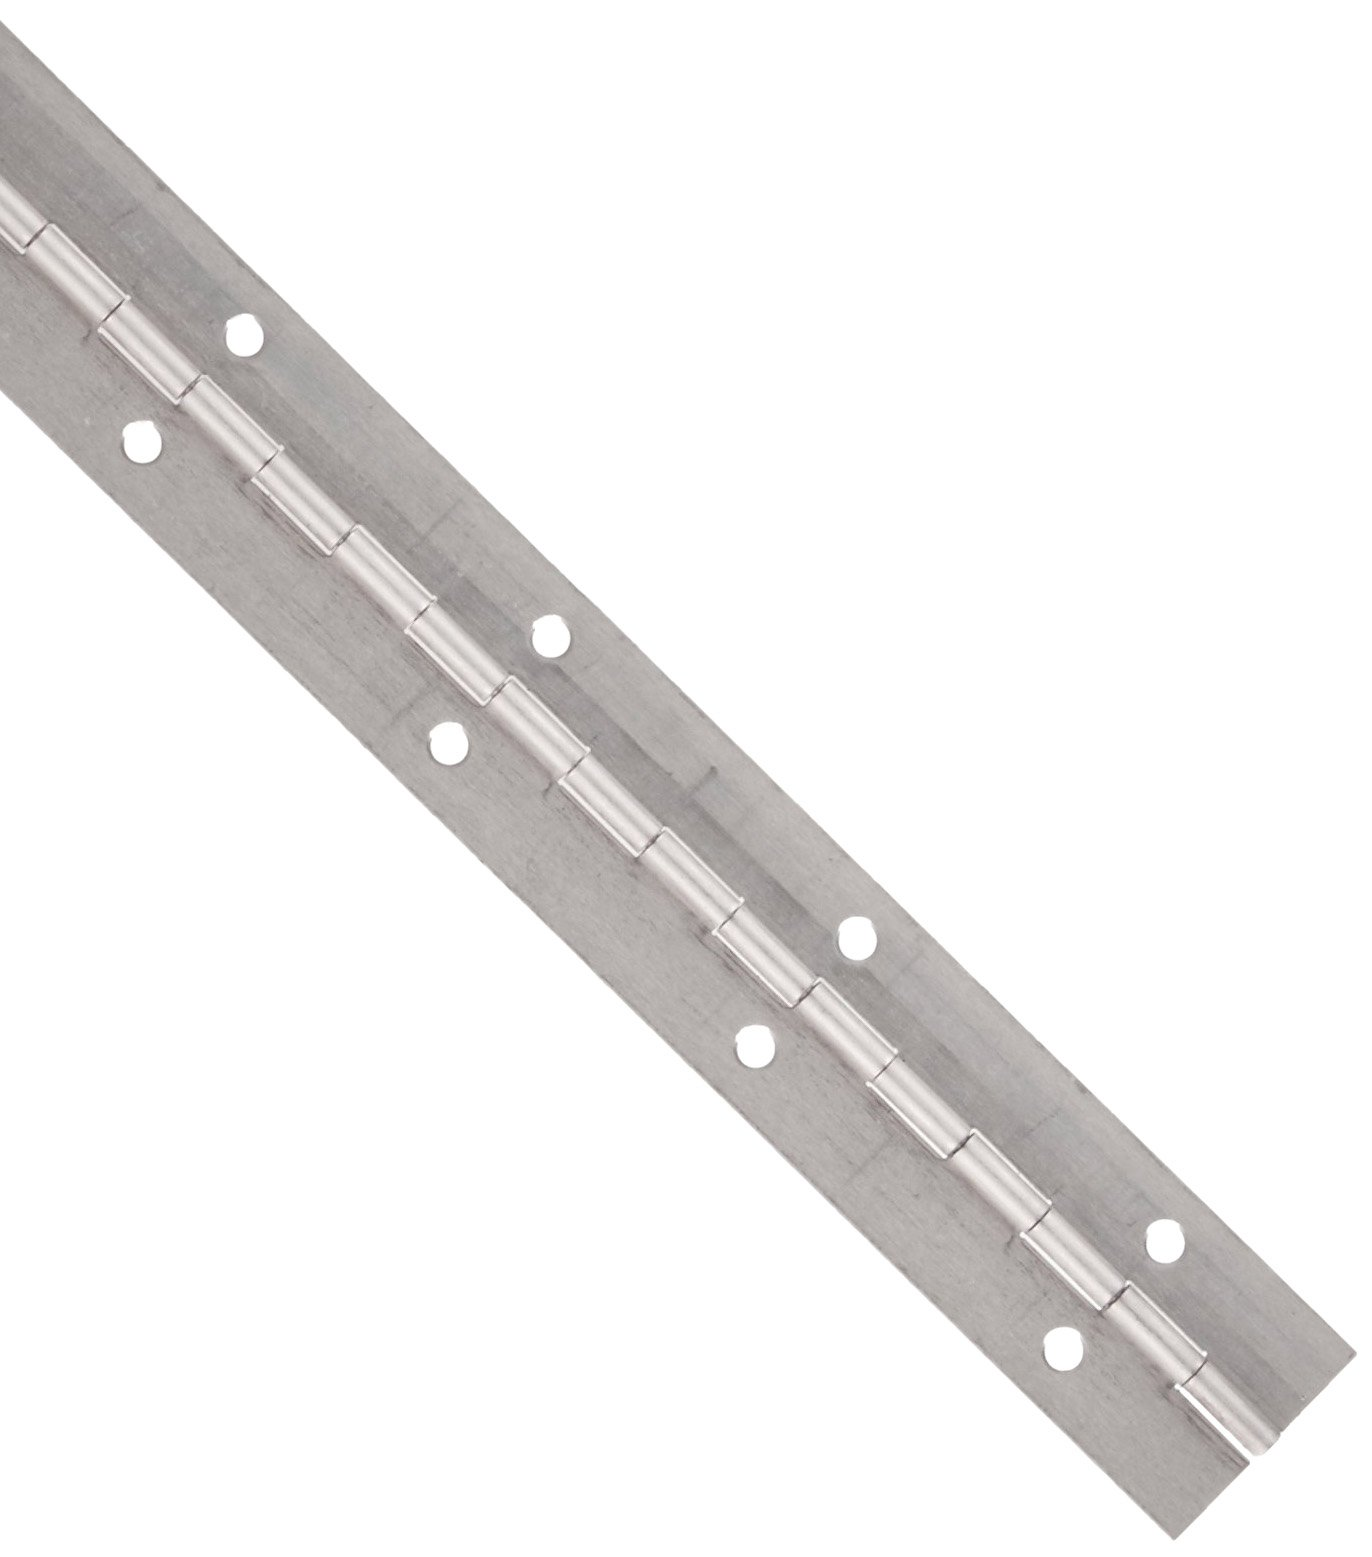 Aluminum 3003 Continuous Hinge with Holes, Unfinished, 0.04'' Leaf Thickness, 1-1/4'' Open Width, 3/32'' Pin Diameter, 1/2'' Knuckle Length, 3' Long (Pack of 1)